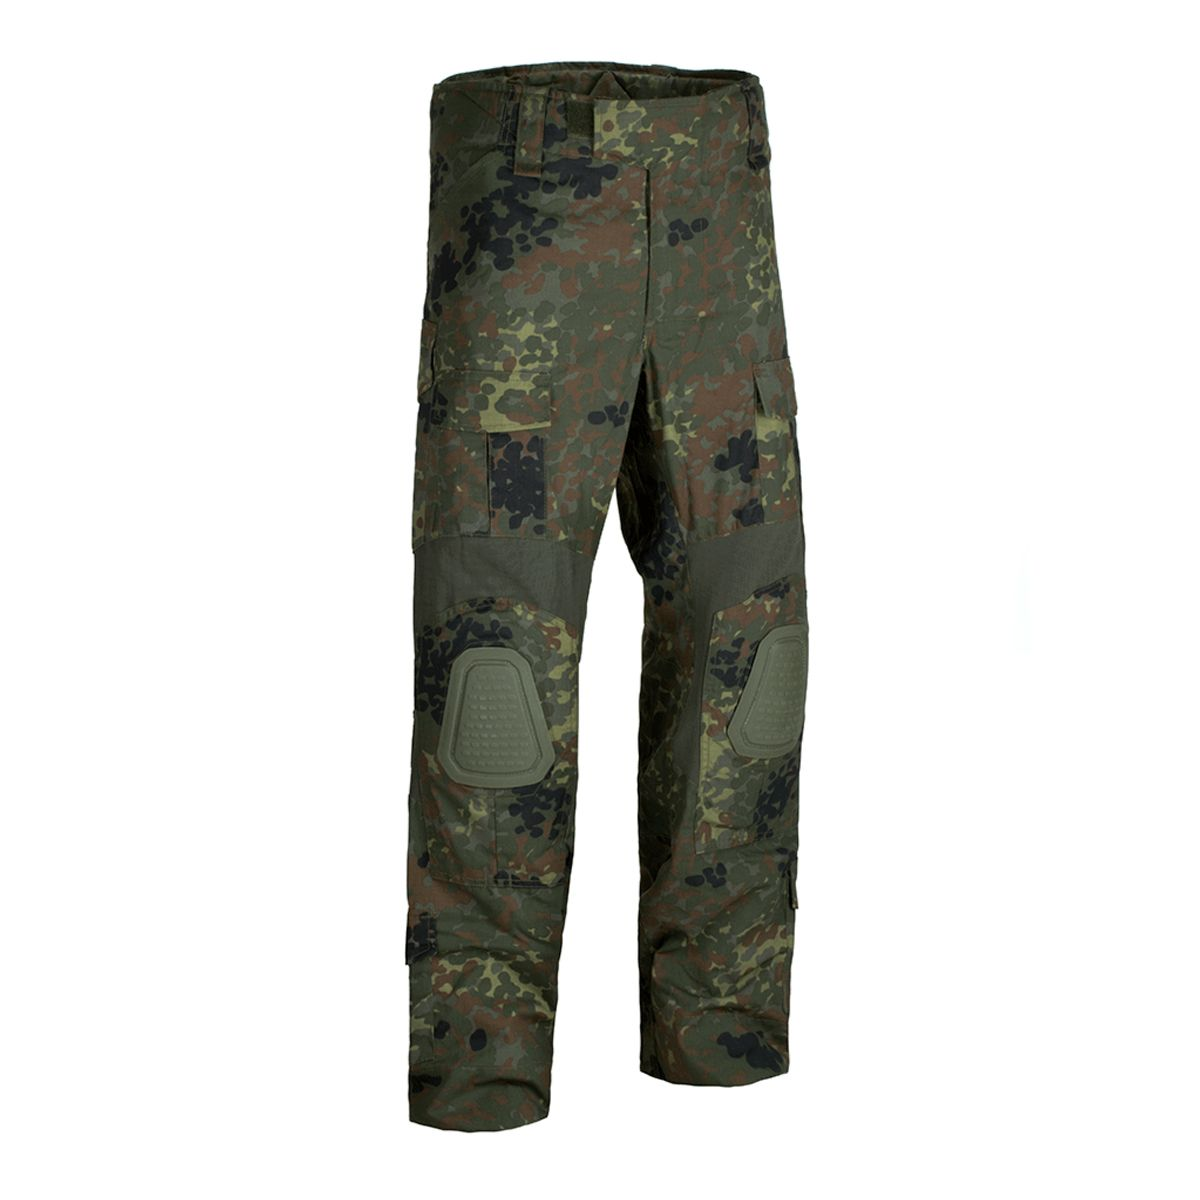 Invader Gear Predator Combat Pants Trousers German Flecktarn